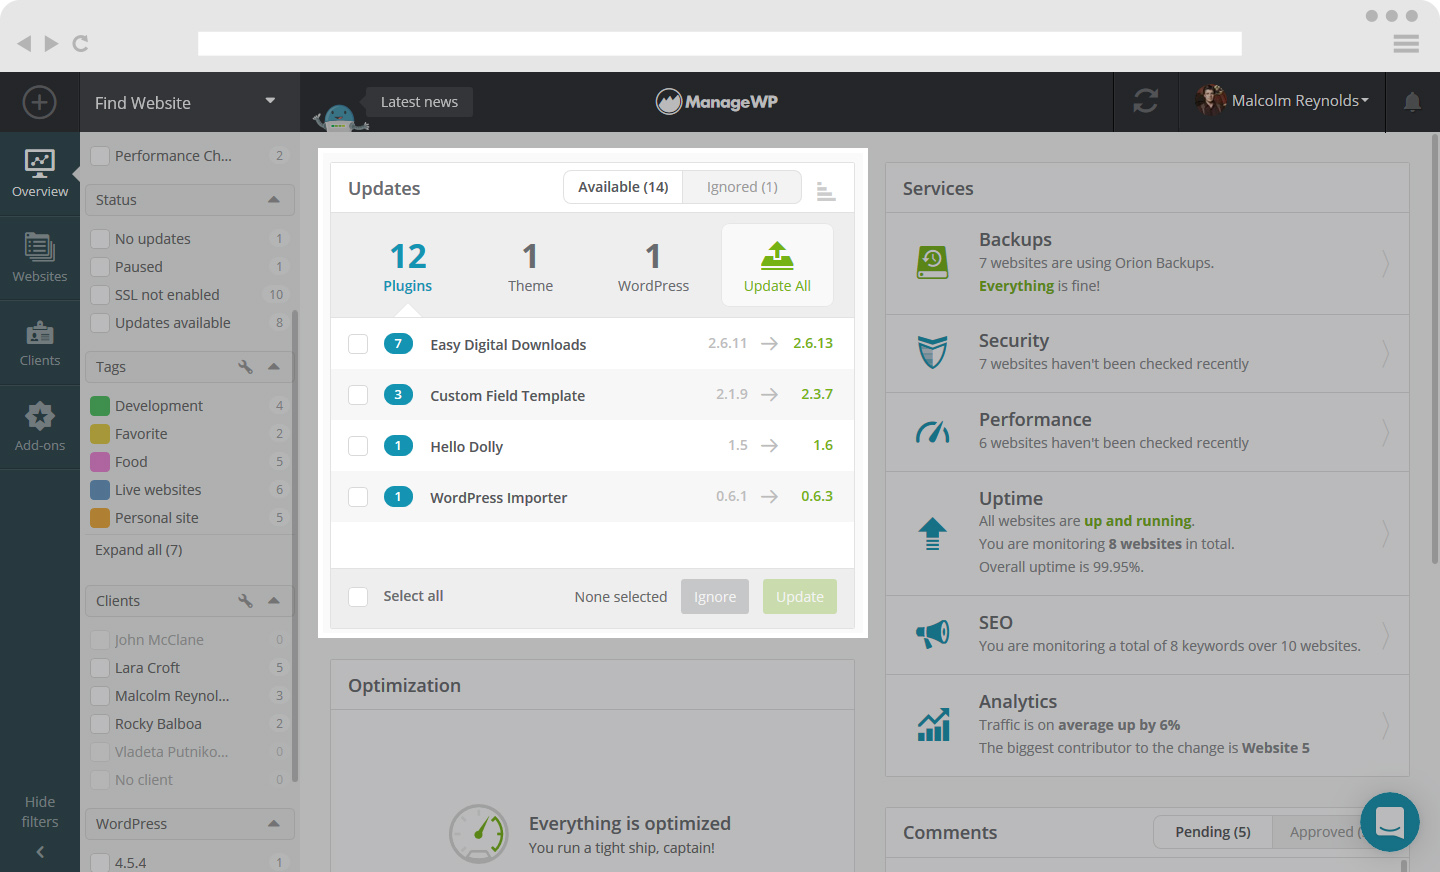 Get to know your ManageWP dashboard - ManageWP